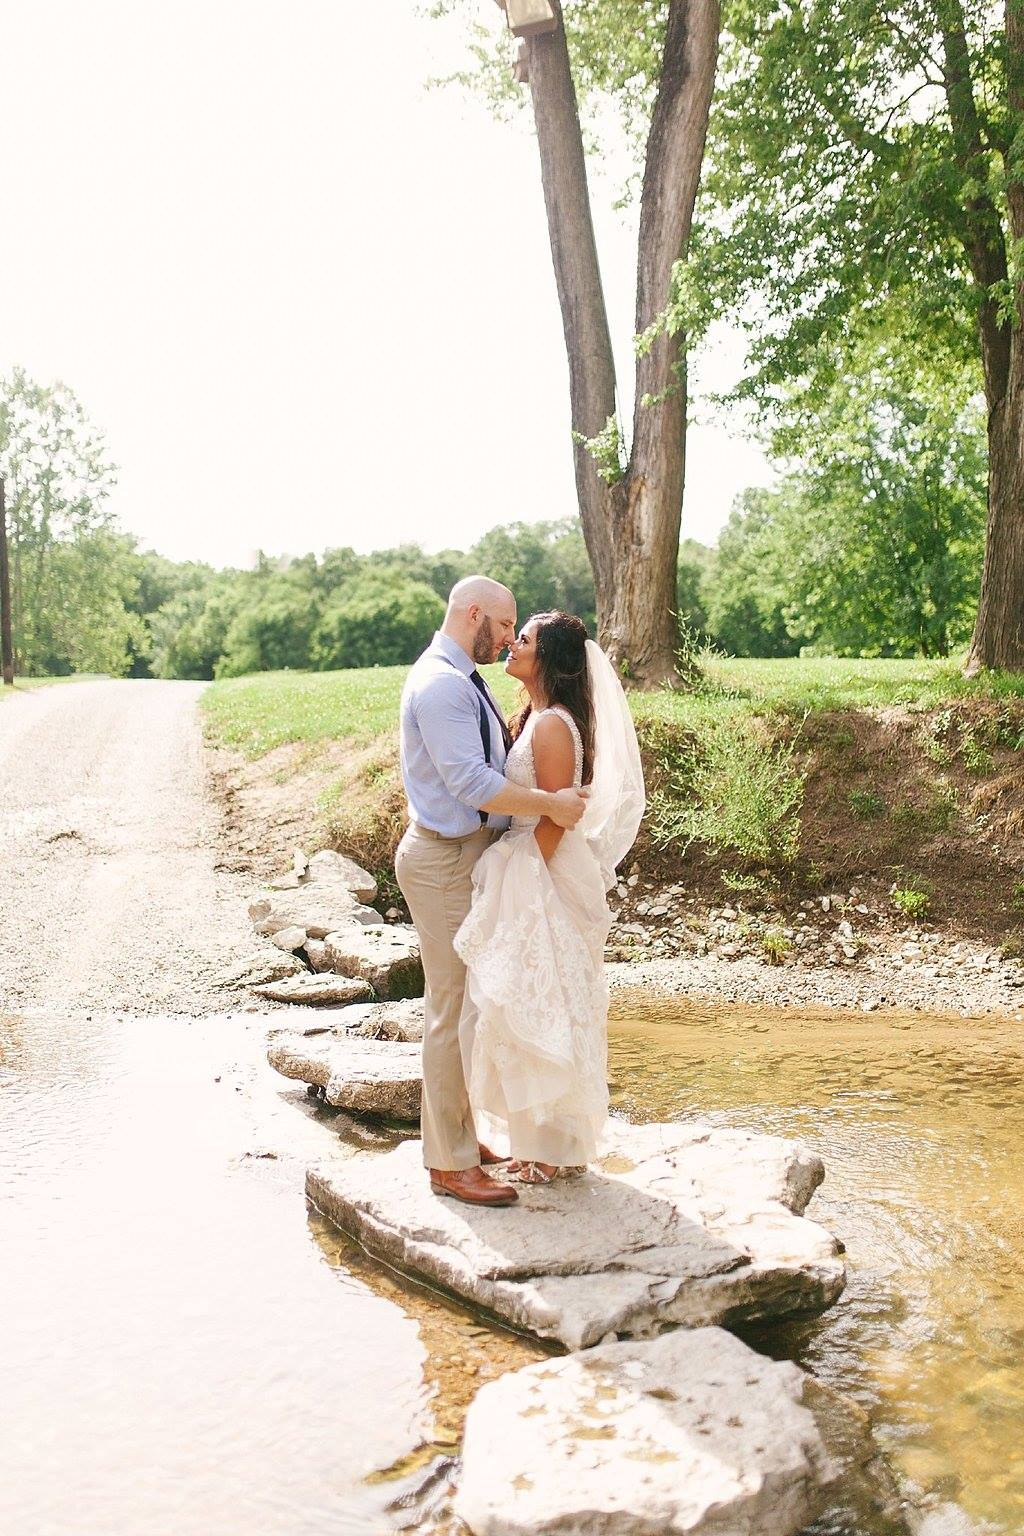 Beautiful Backdrops - Our white shiplap walls are blank canvas that can be customized to your unique style. And when you step outside onto our 85 acre property, the options are endless. Take your engagement photos in the cool waters of our rock bottom creek; have your gal pals pose with you in a field of wild flowers; or you can even head to the pasture and have your pictures bare back on a horse! God's creation creates the perfect backdrop, and there is an infinite supply of beauty at the Ranch.